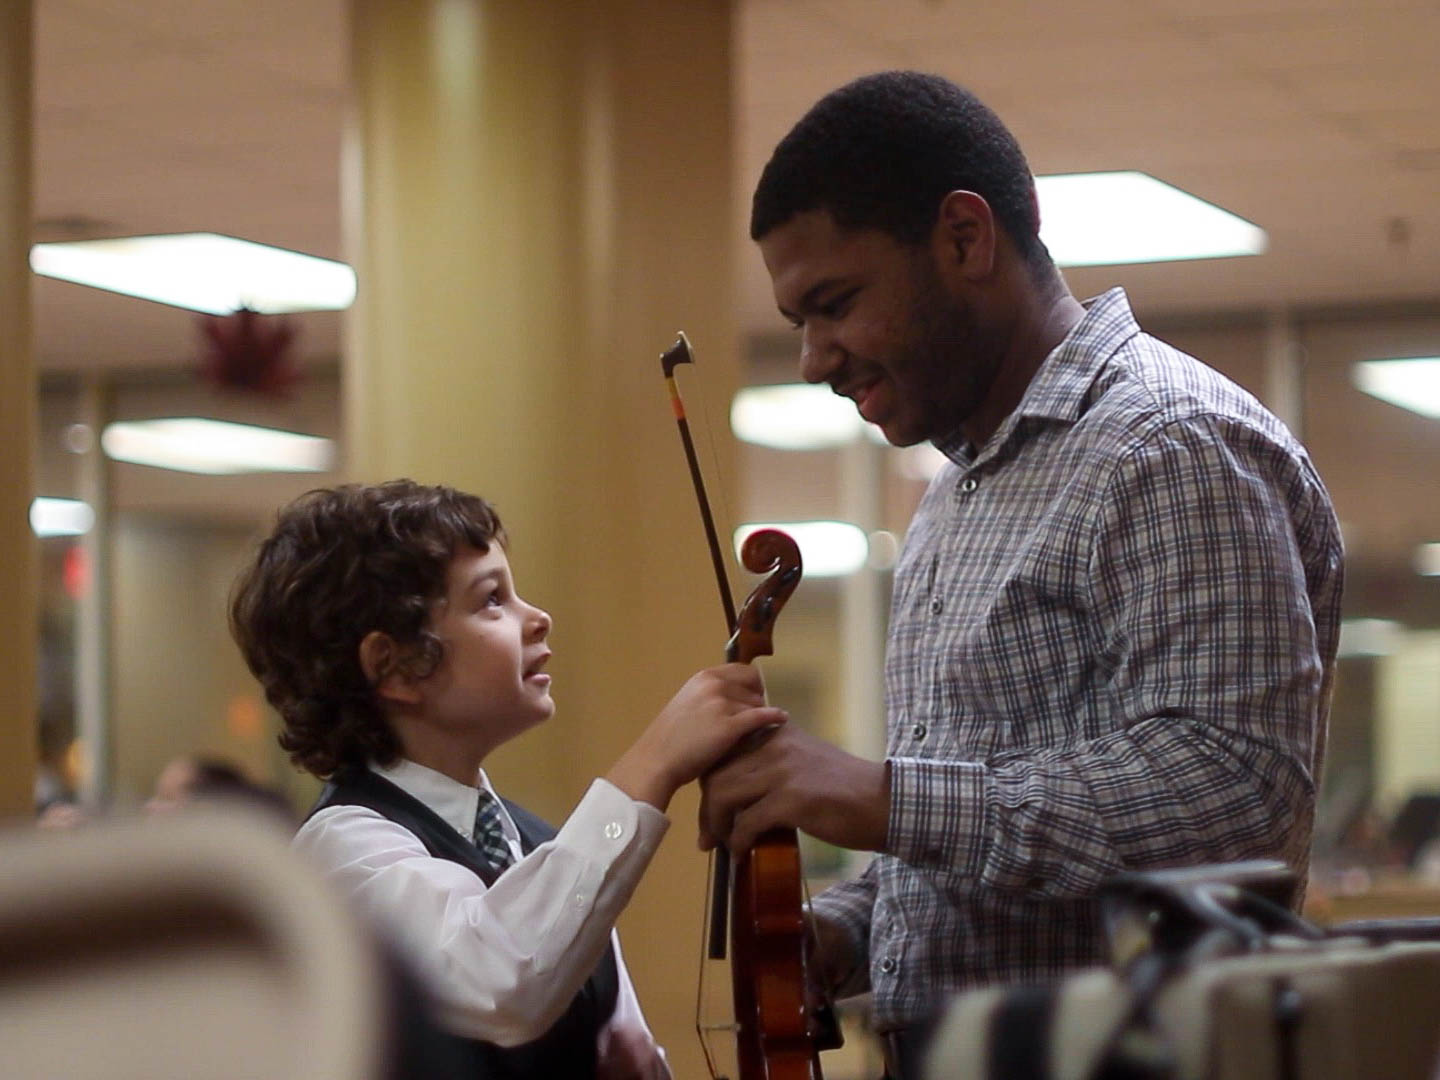 Noel helping a younger music haven student tune his violin